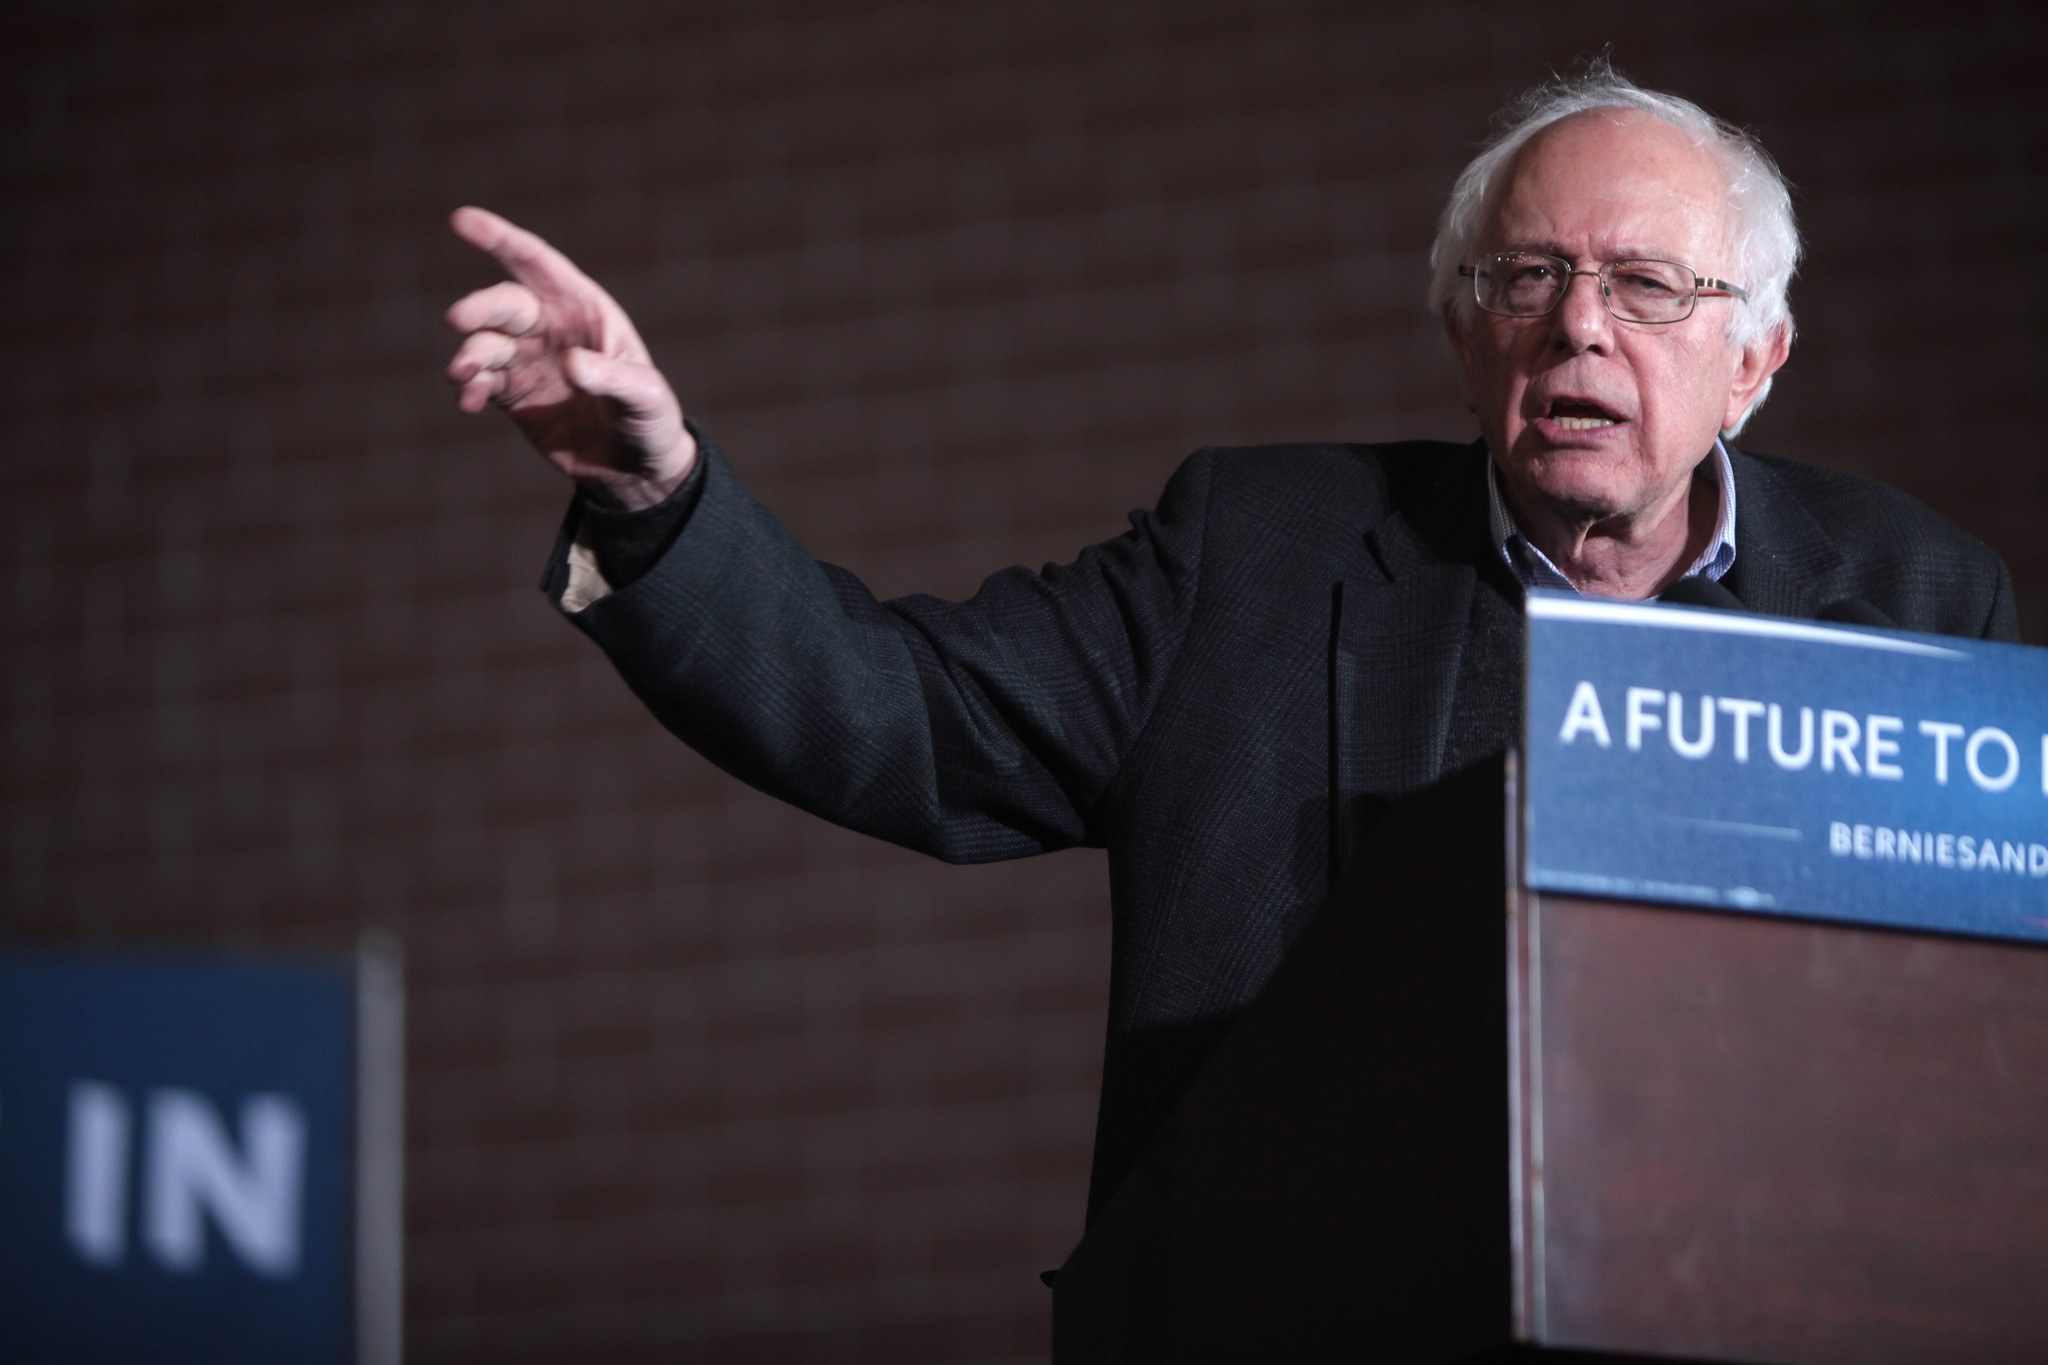 Sorry, Sen. Sanders: Minimum Wage Hikes Reduce Real Income for Workers